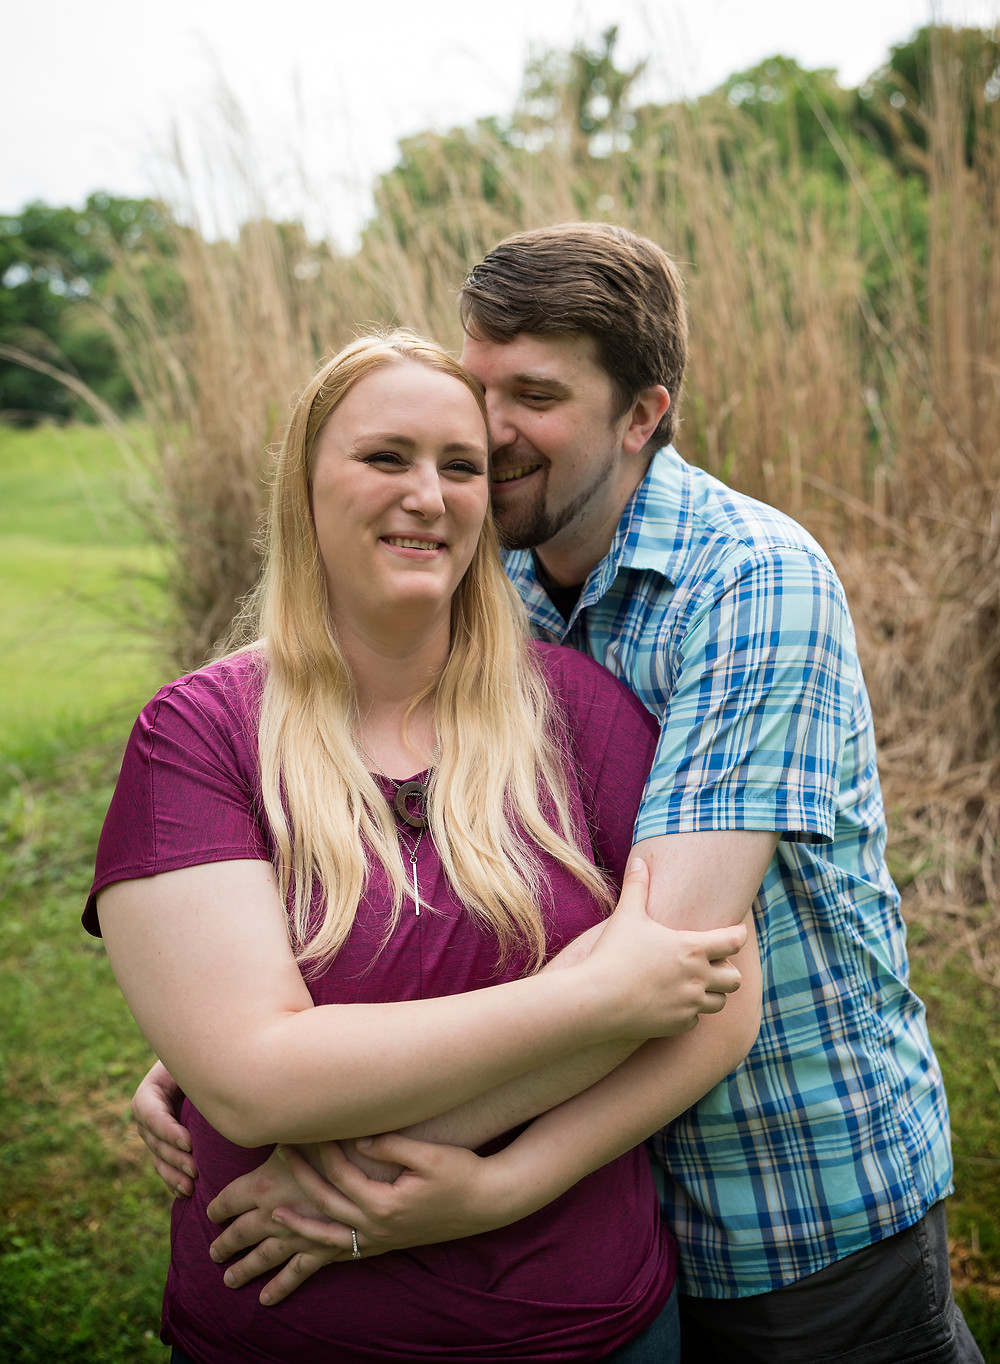 Hills and Dales Engagement | Dayton Ohio  | Mercedes and Bill